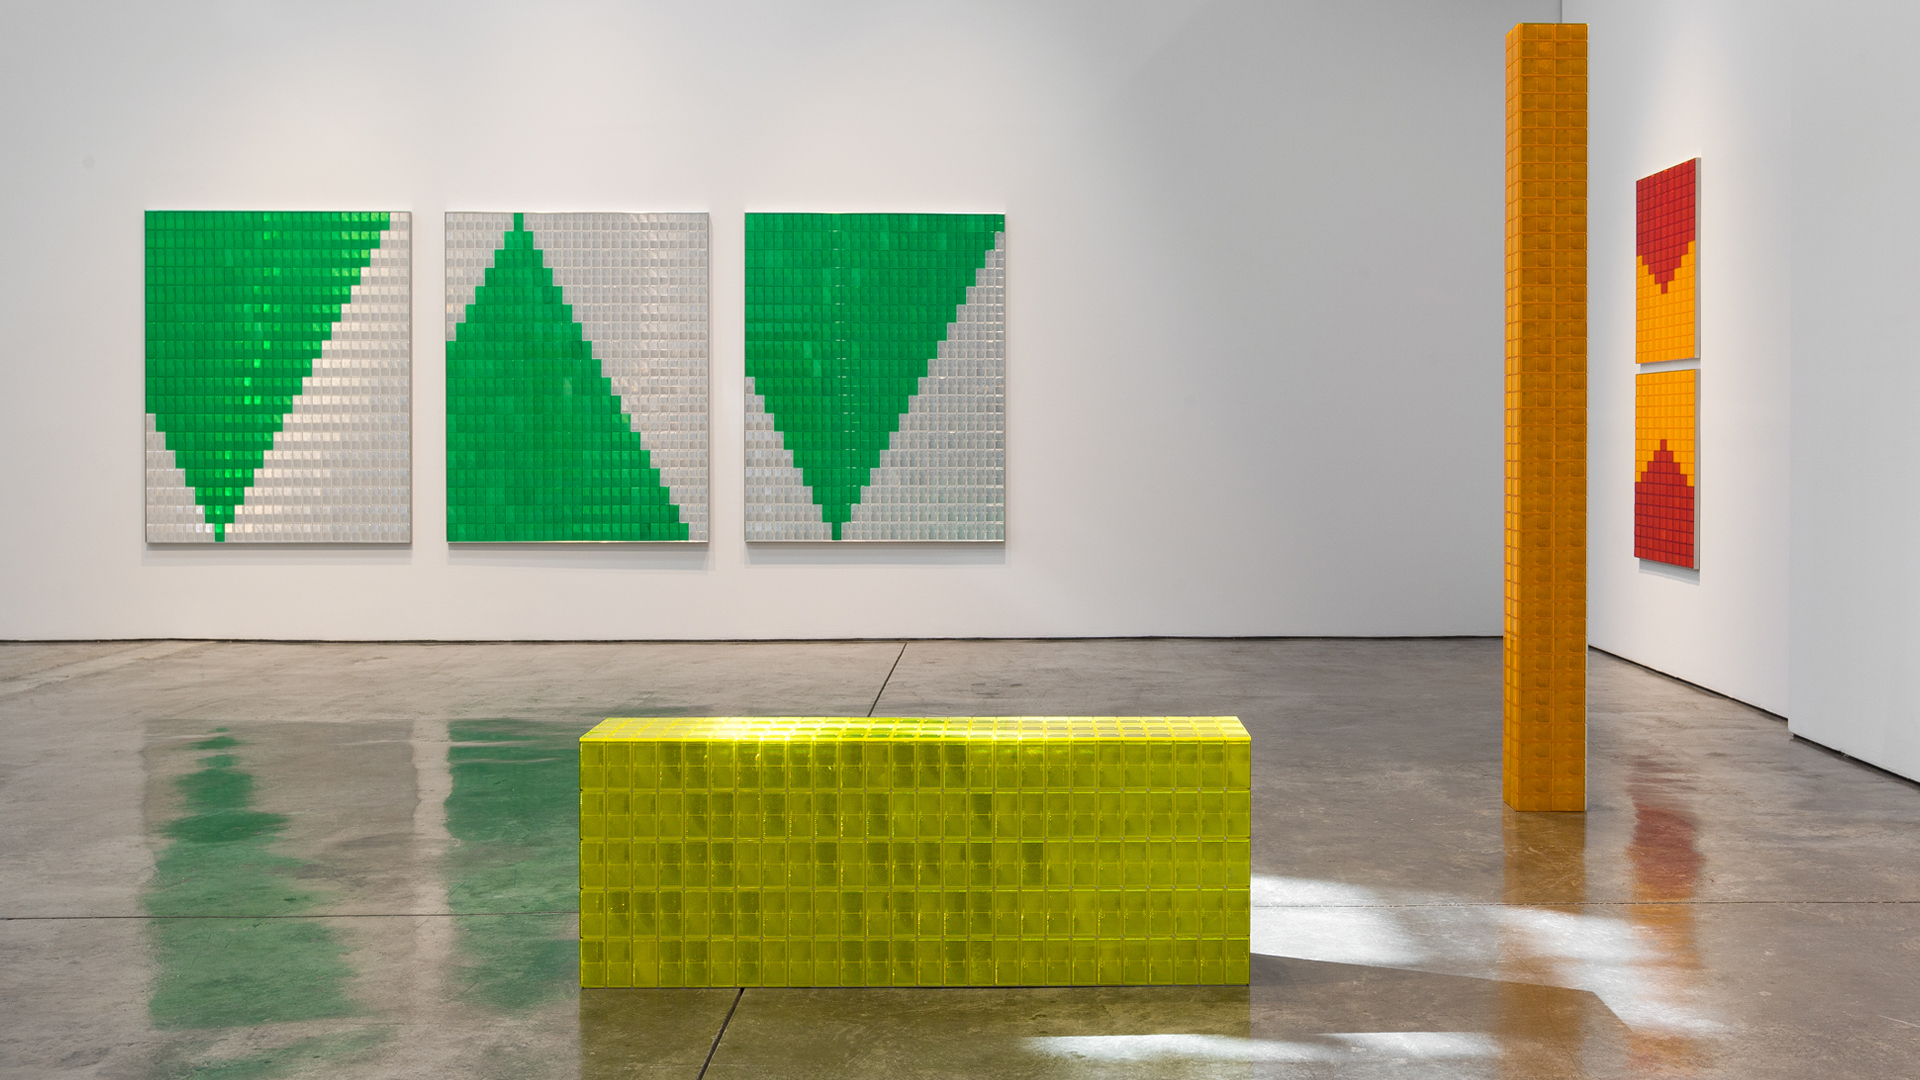 Rana Begum, Perception and Reflection, 2019, The Third Line, Installation view 1